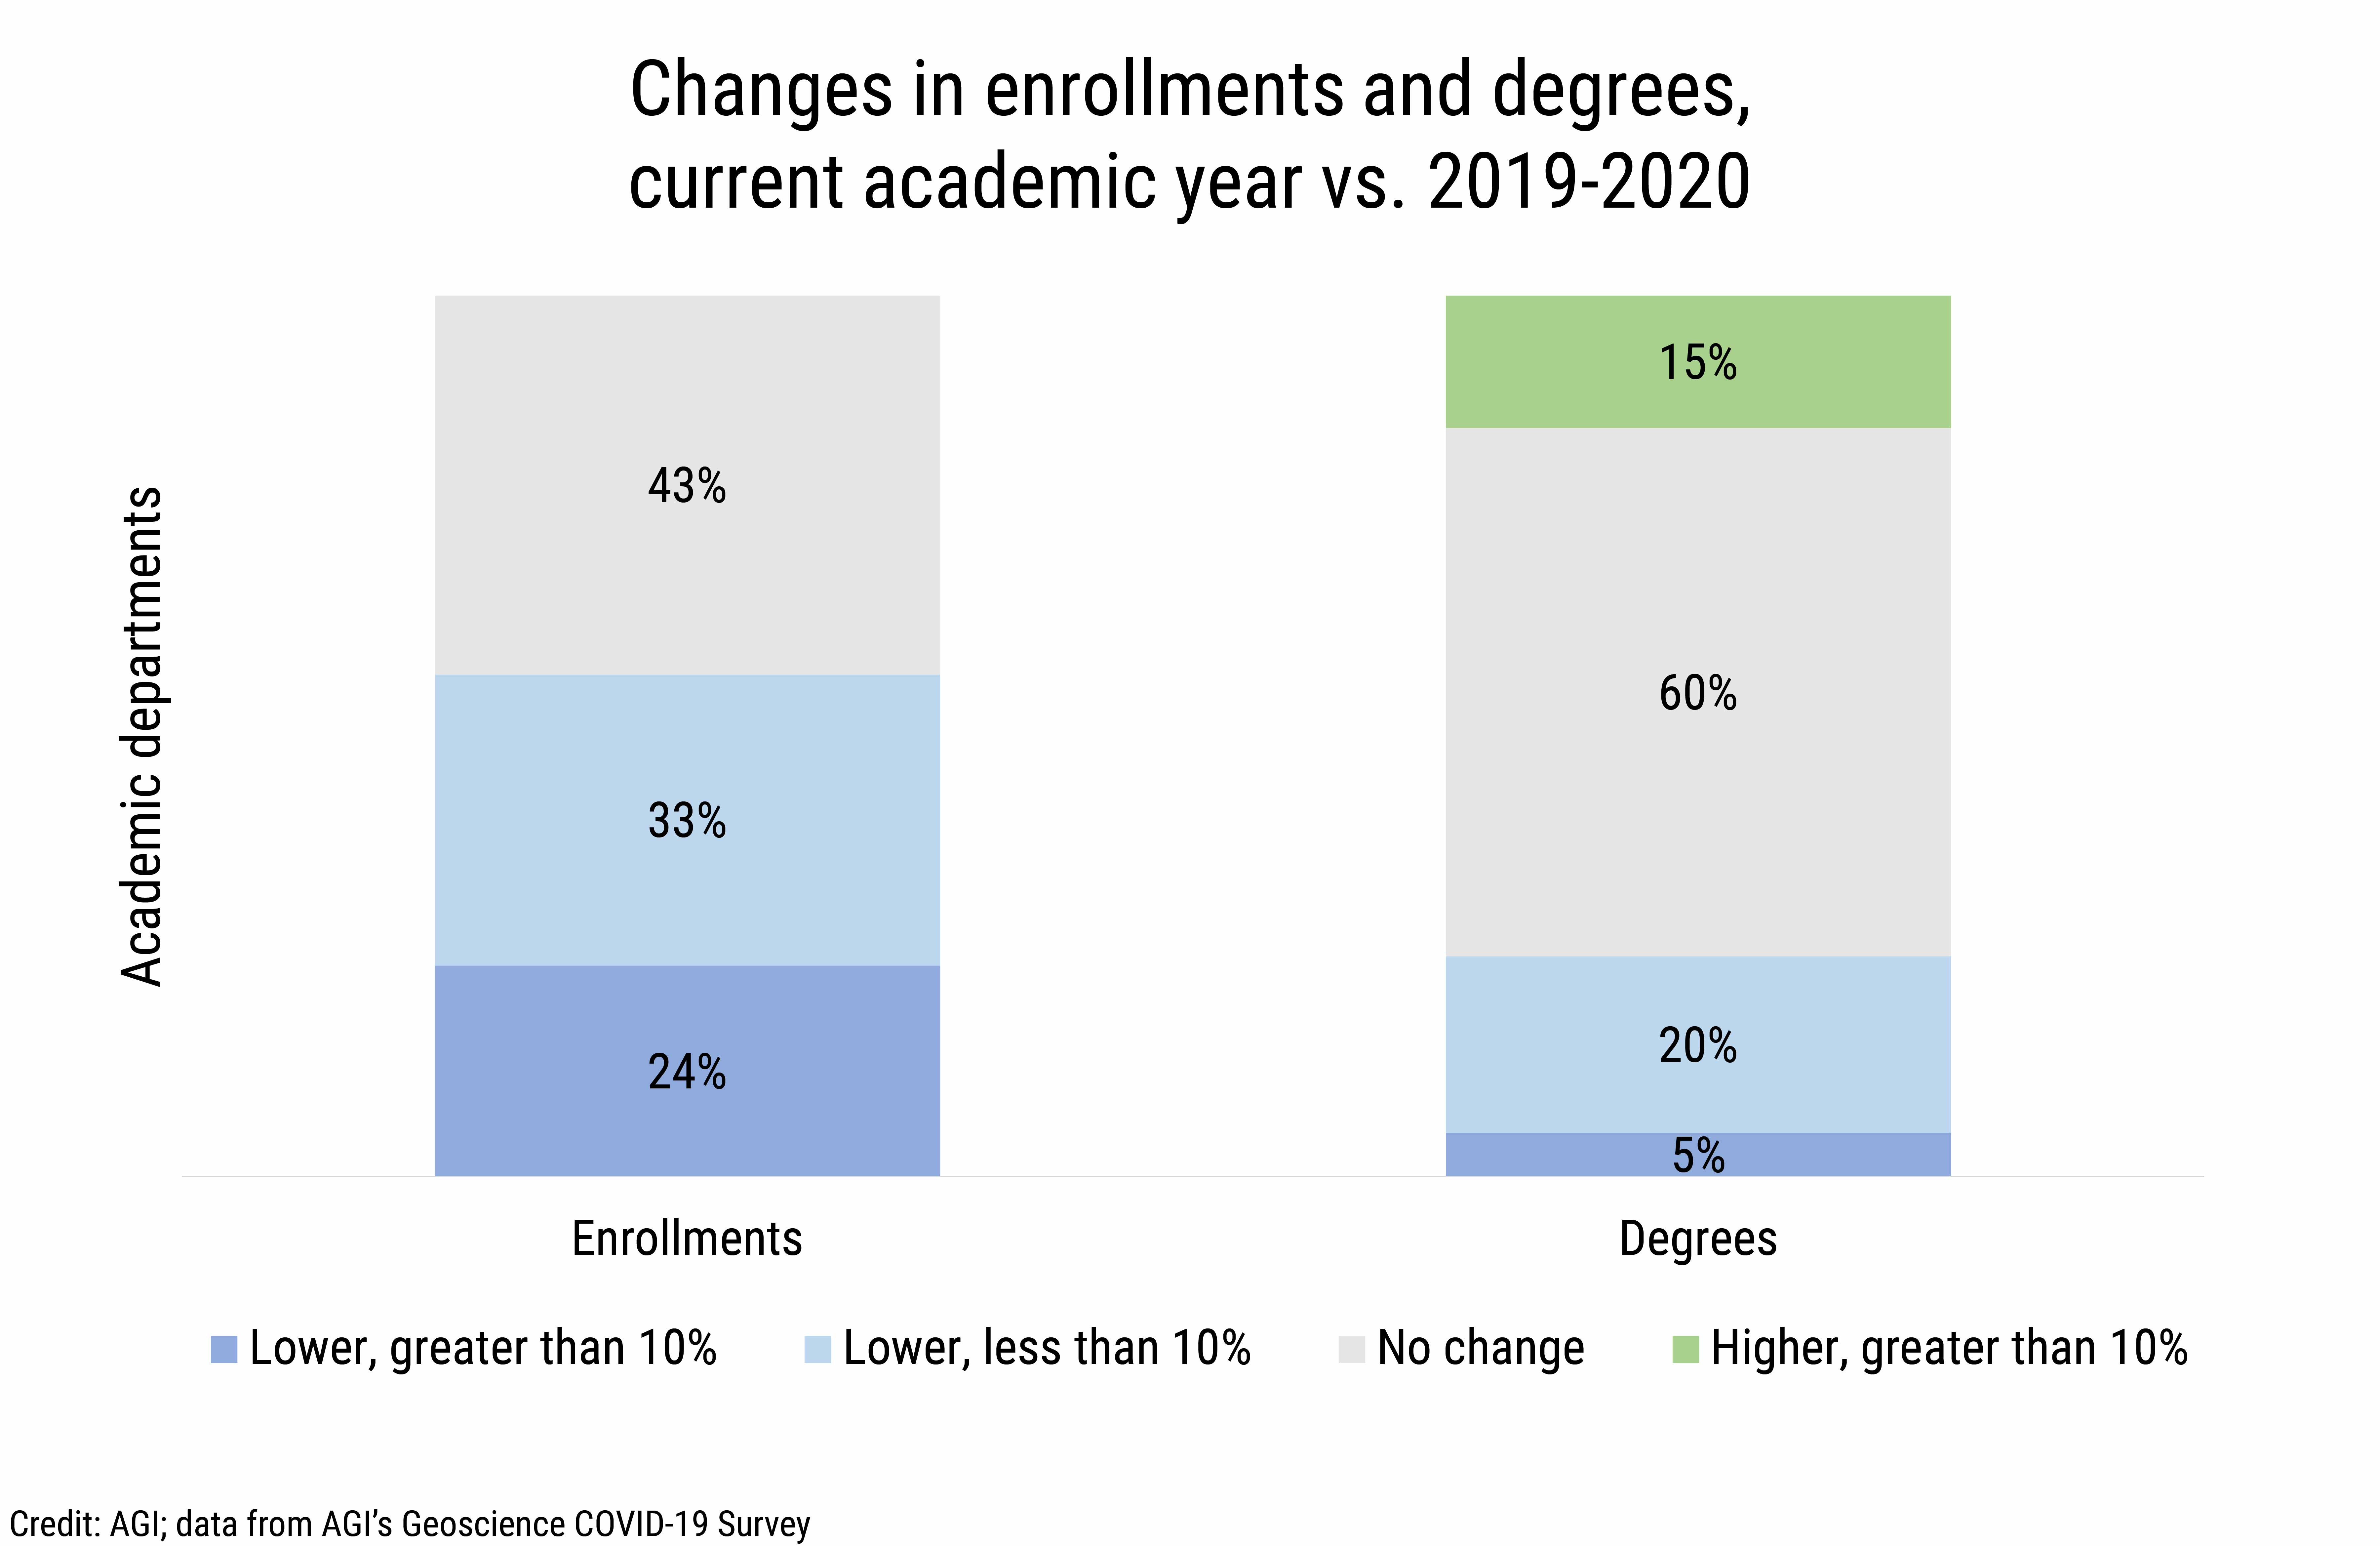 DB_2021-014 chart 11: Changes in enrollments and degrees, current academic year vs. 2019-2020 (Credit: AGI; data from AGI's Geoscience COVID-19 Survey)